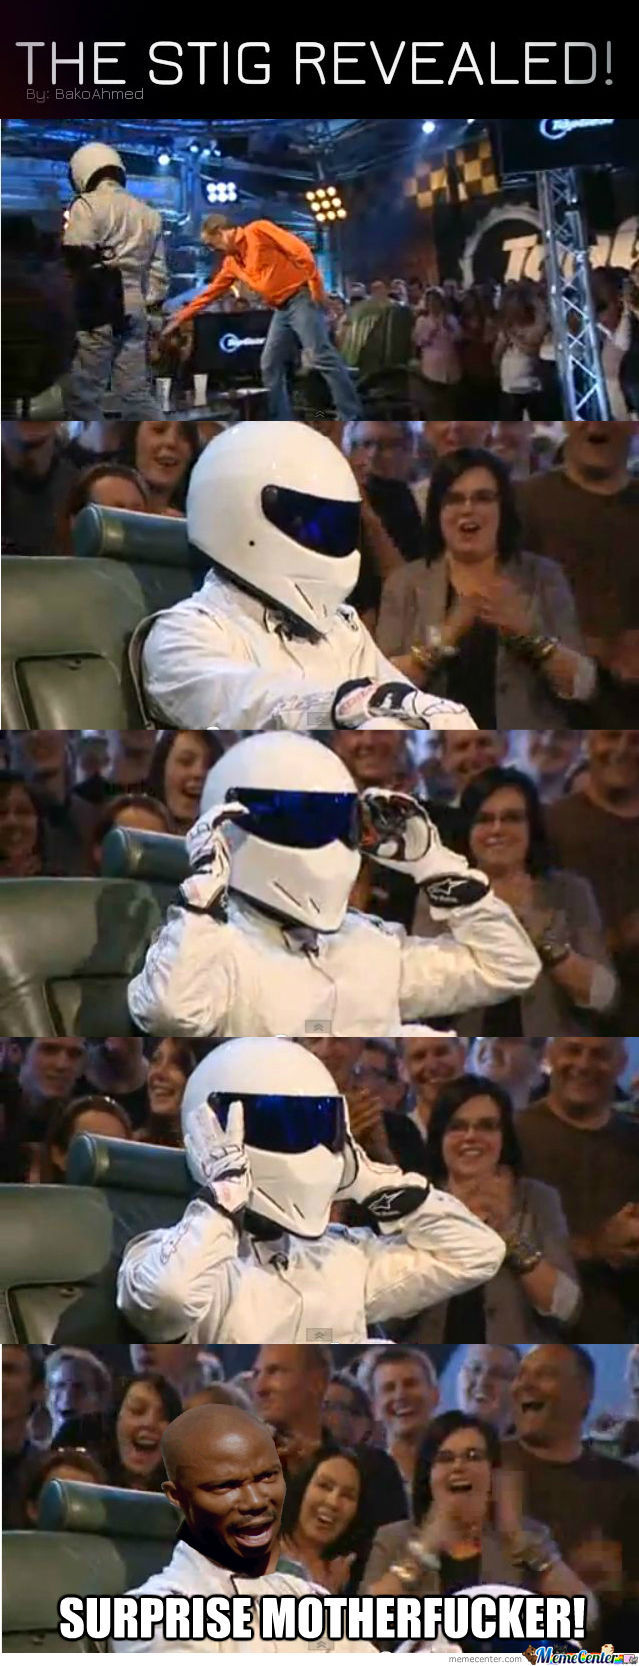 The Stig Revealed!